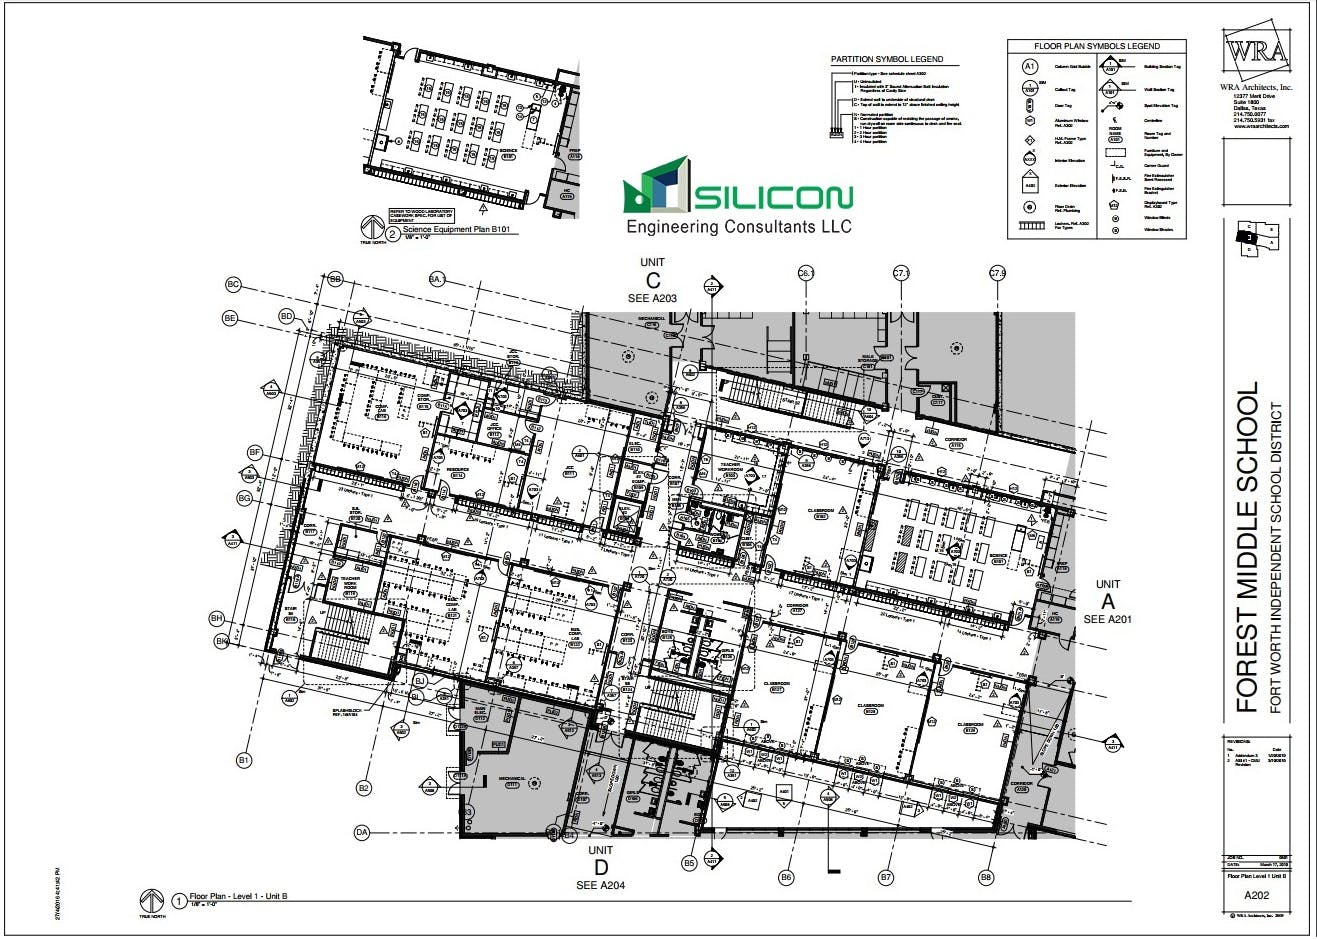 Structural Steel Detailing Services USA   Silicon Consultant LLC ...